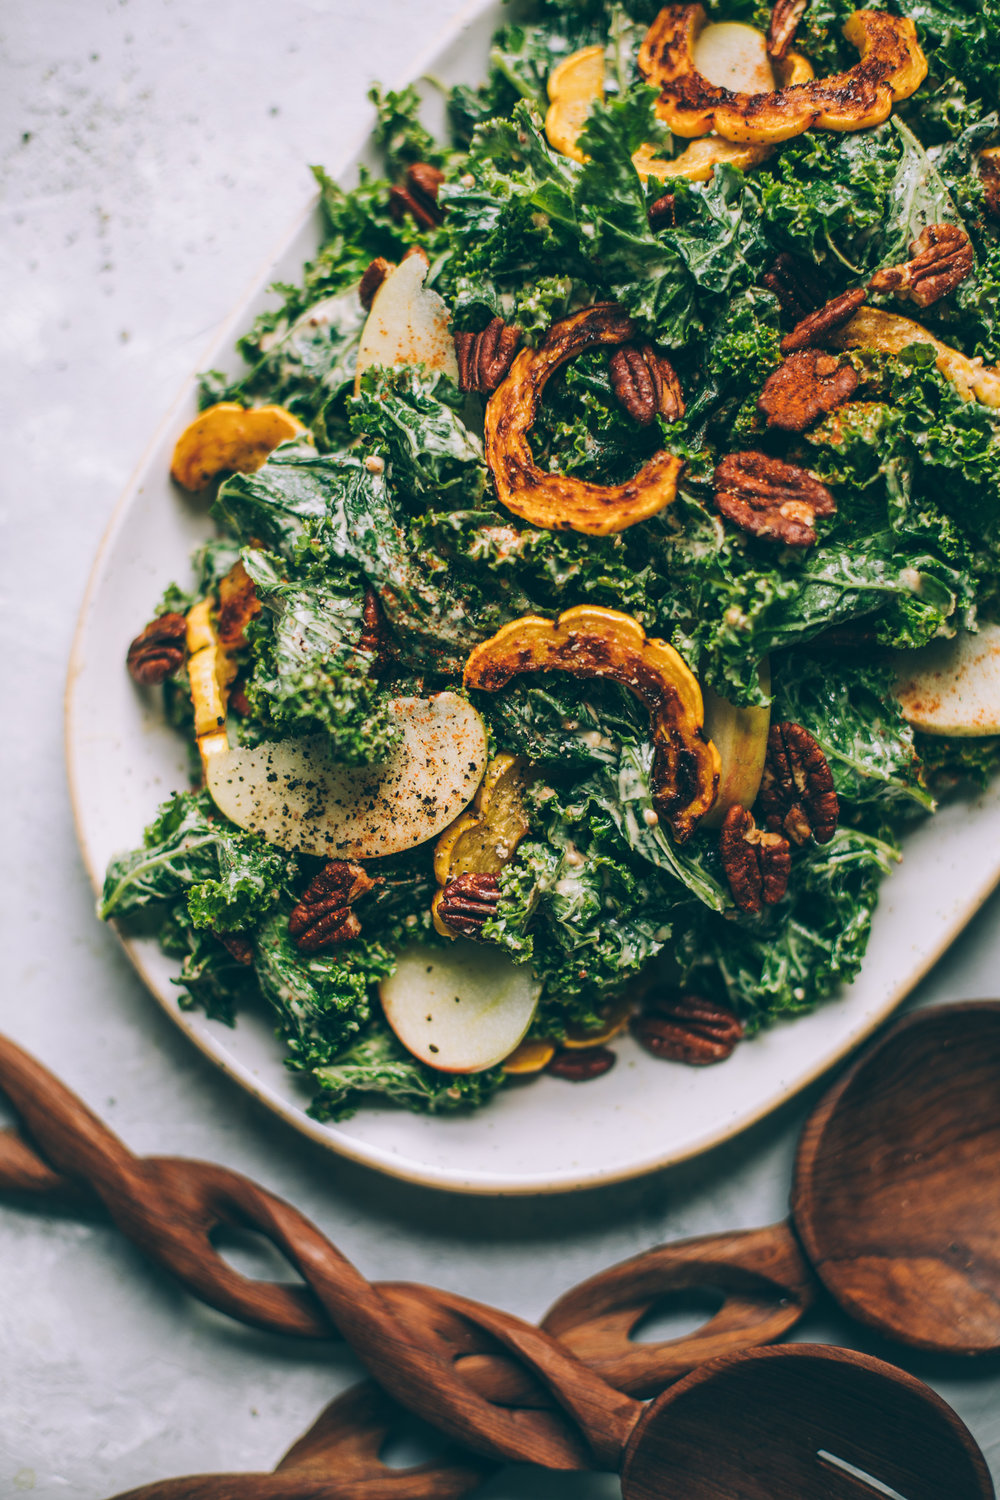 Harvest Moon Kale Caesar Salad Recipe with Cashew Maple Dijon Dressing + roasted delicata squash, apples and tamari pecans